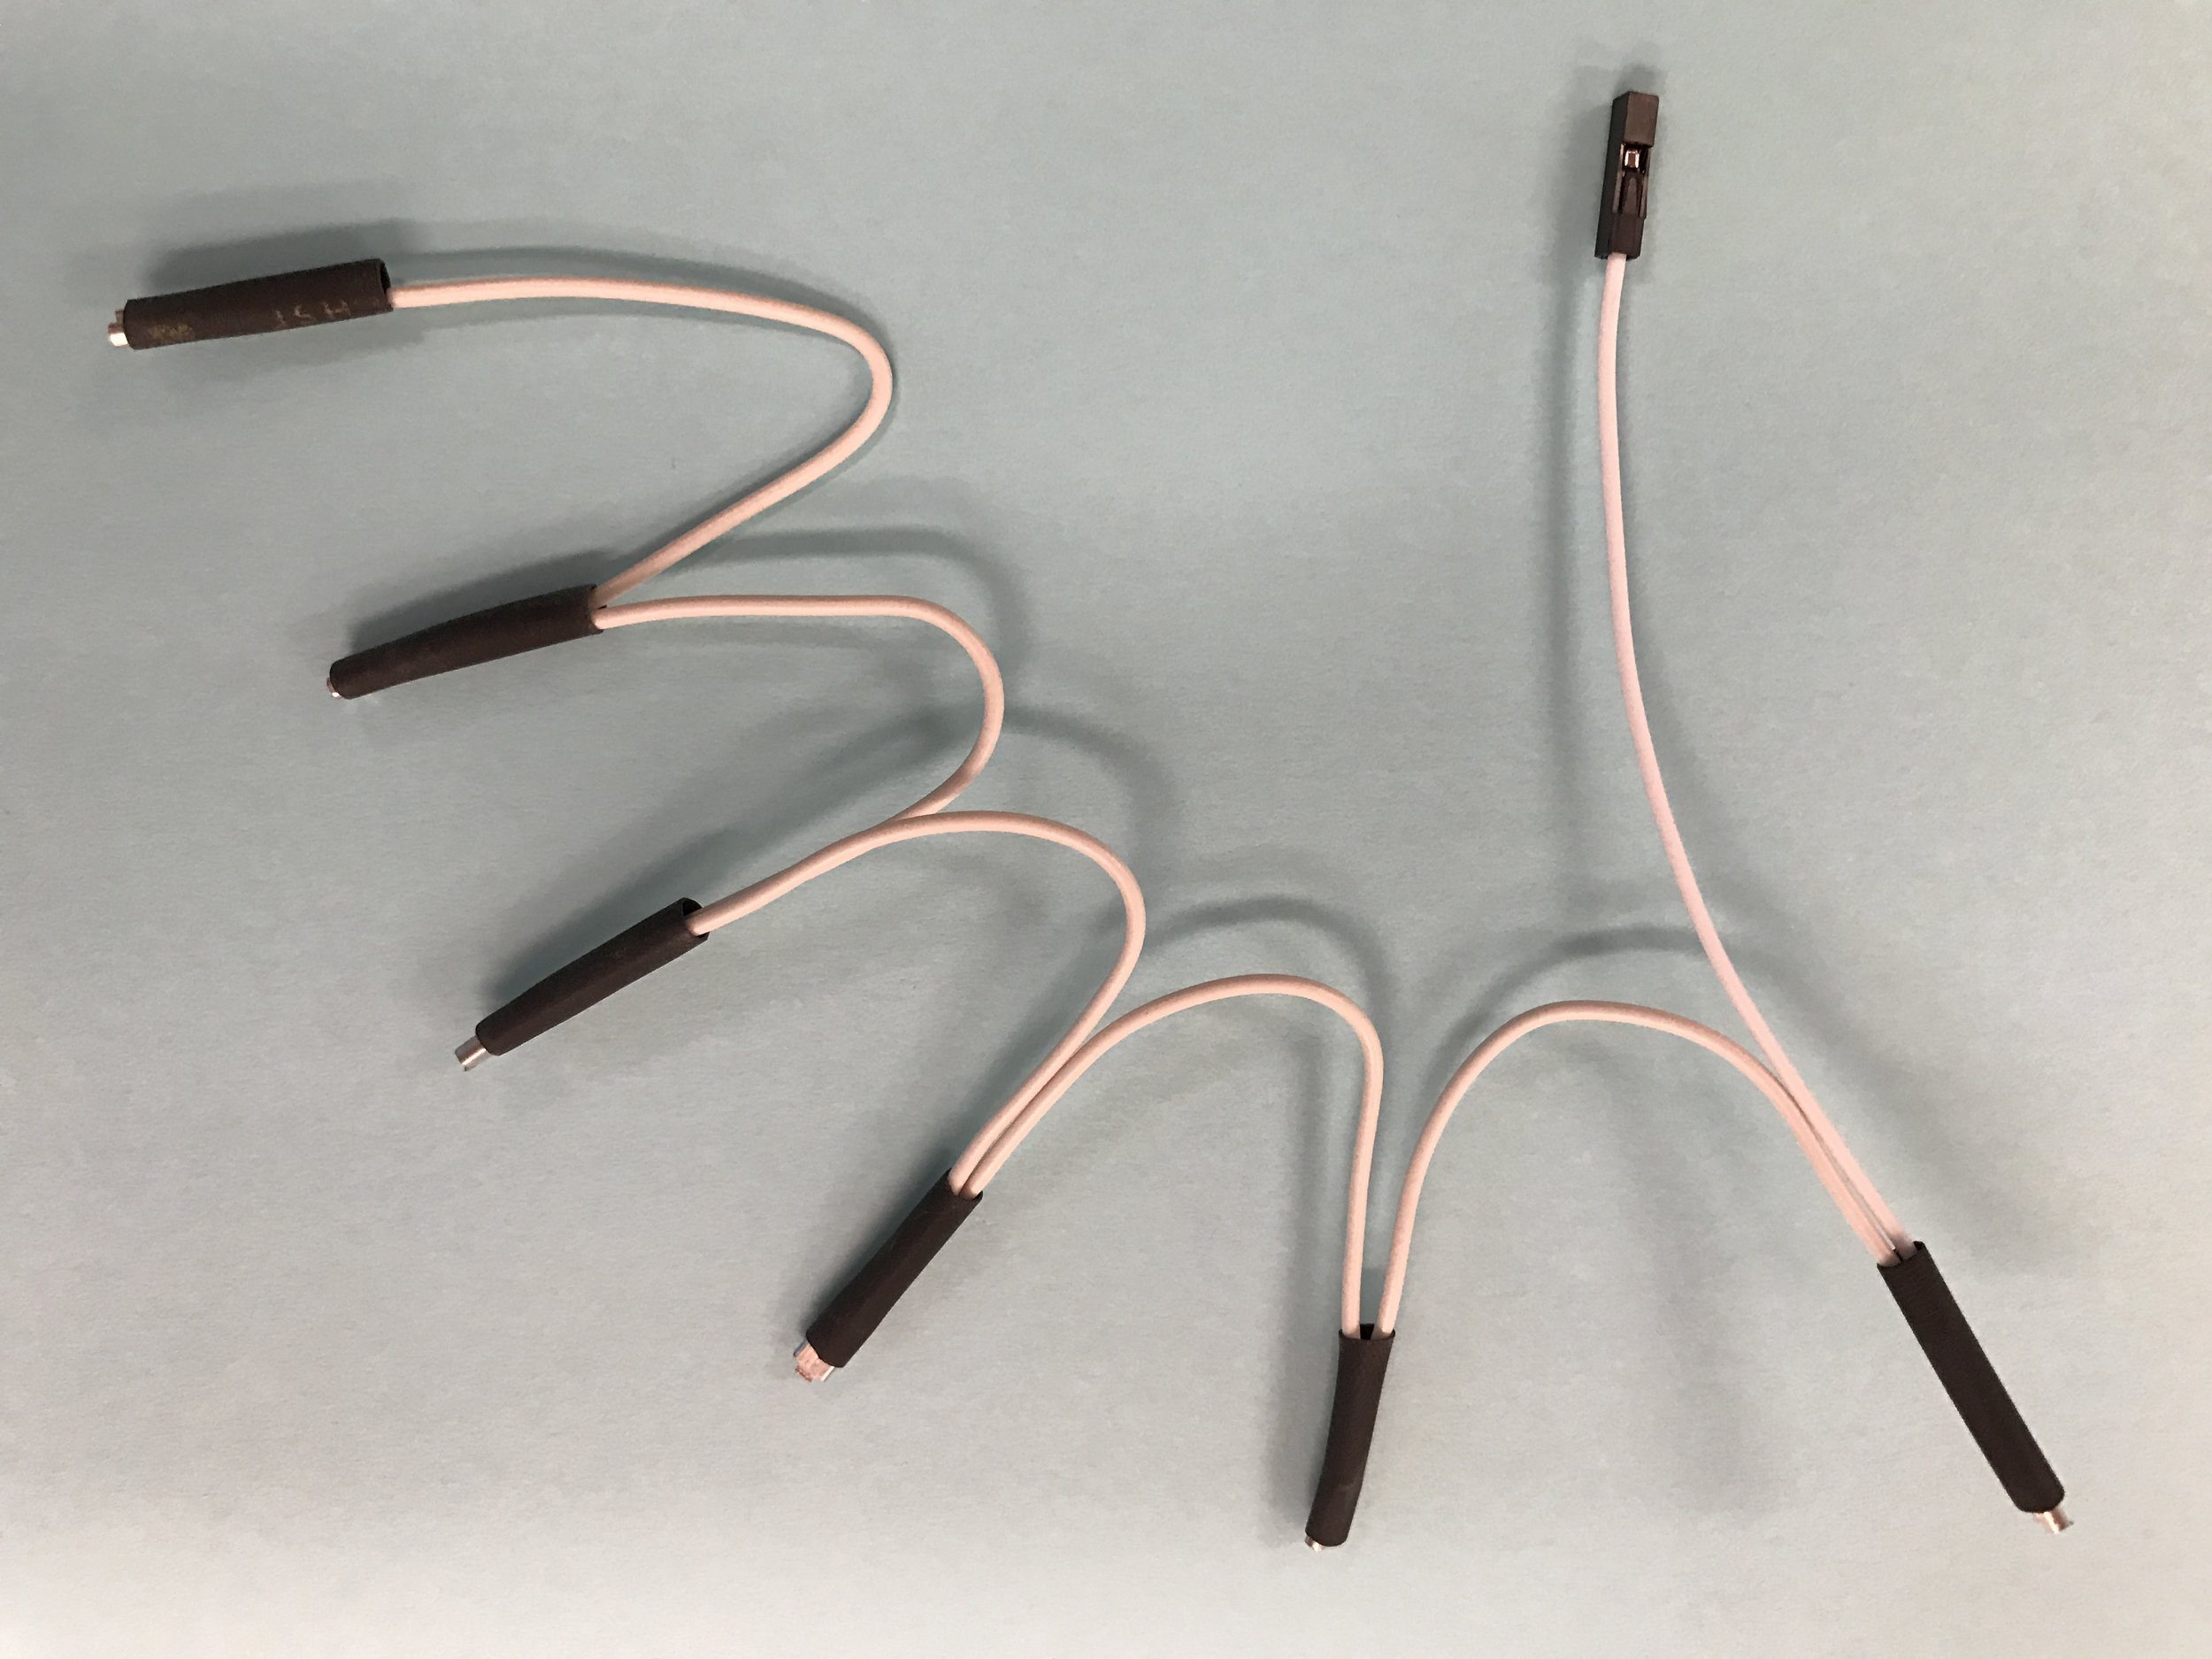 """- Attach the four remaining lengths of wire to create a chain, crimping together a new wire with the exposed bare end of the previous wire.One bare wire will remain at the end. Put a crimp on that bare wire.Cut six 2cm (3/4"""") long pieces of insulator tube; gently push it over each of the crimped ends of the daisy chain.Your final chain will include six crimped ends and one white plastic jumper end."""